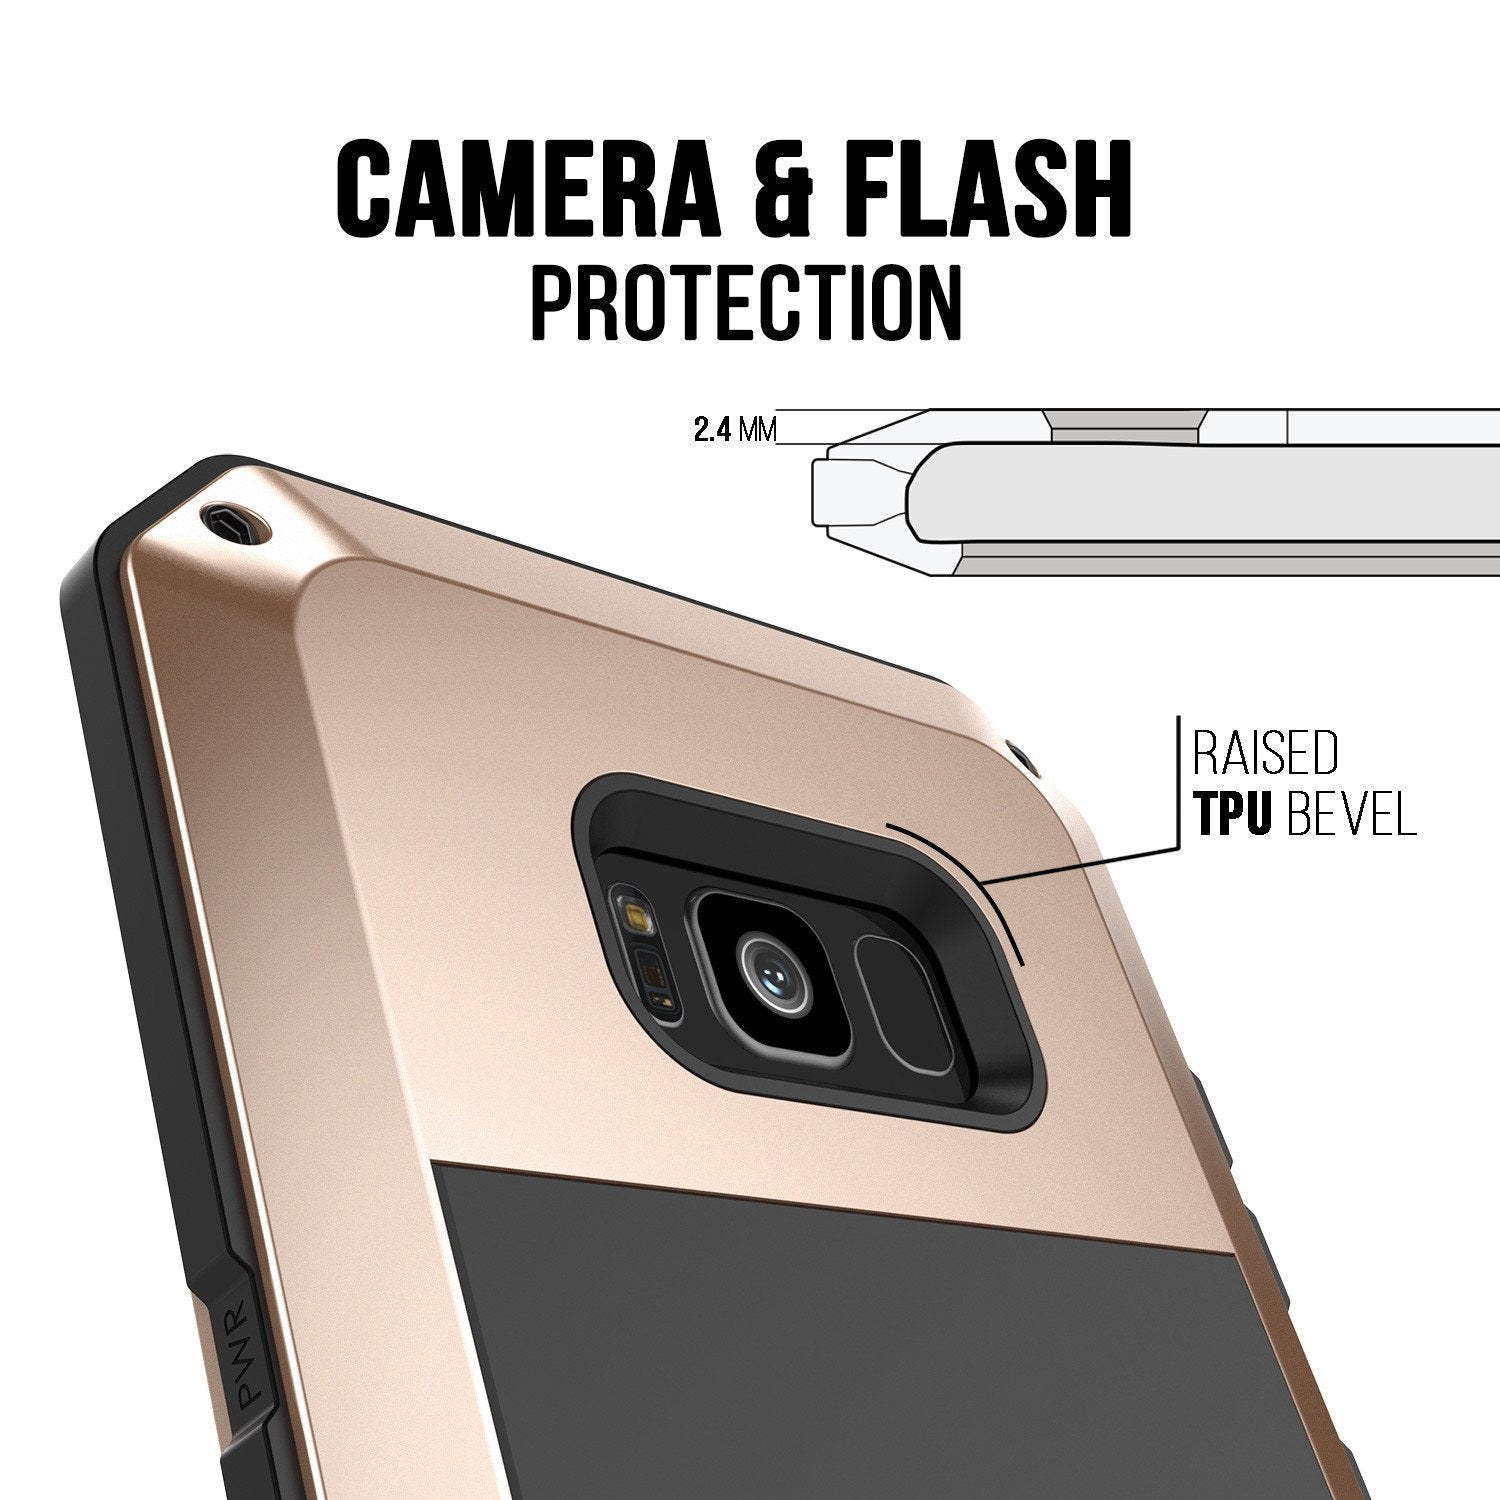 Galaxy S8 Metal Case, Heavy Duty Military Grade Rugged Armor Cover [shock proof] W/ Prime Drop Protection [GOLD]